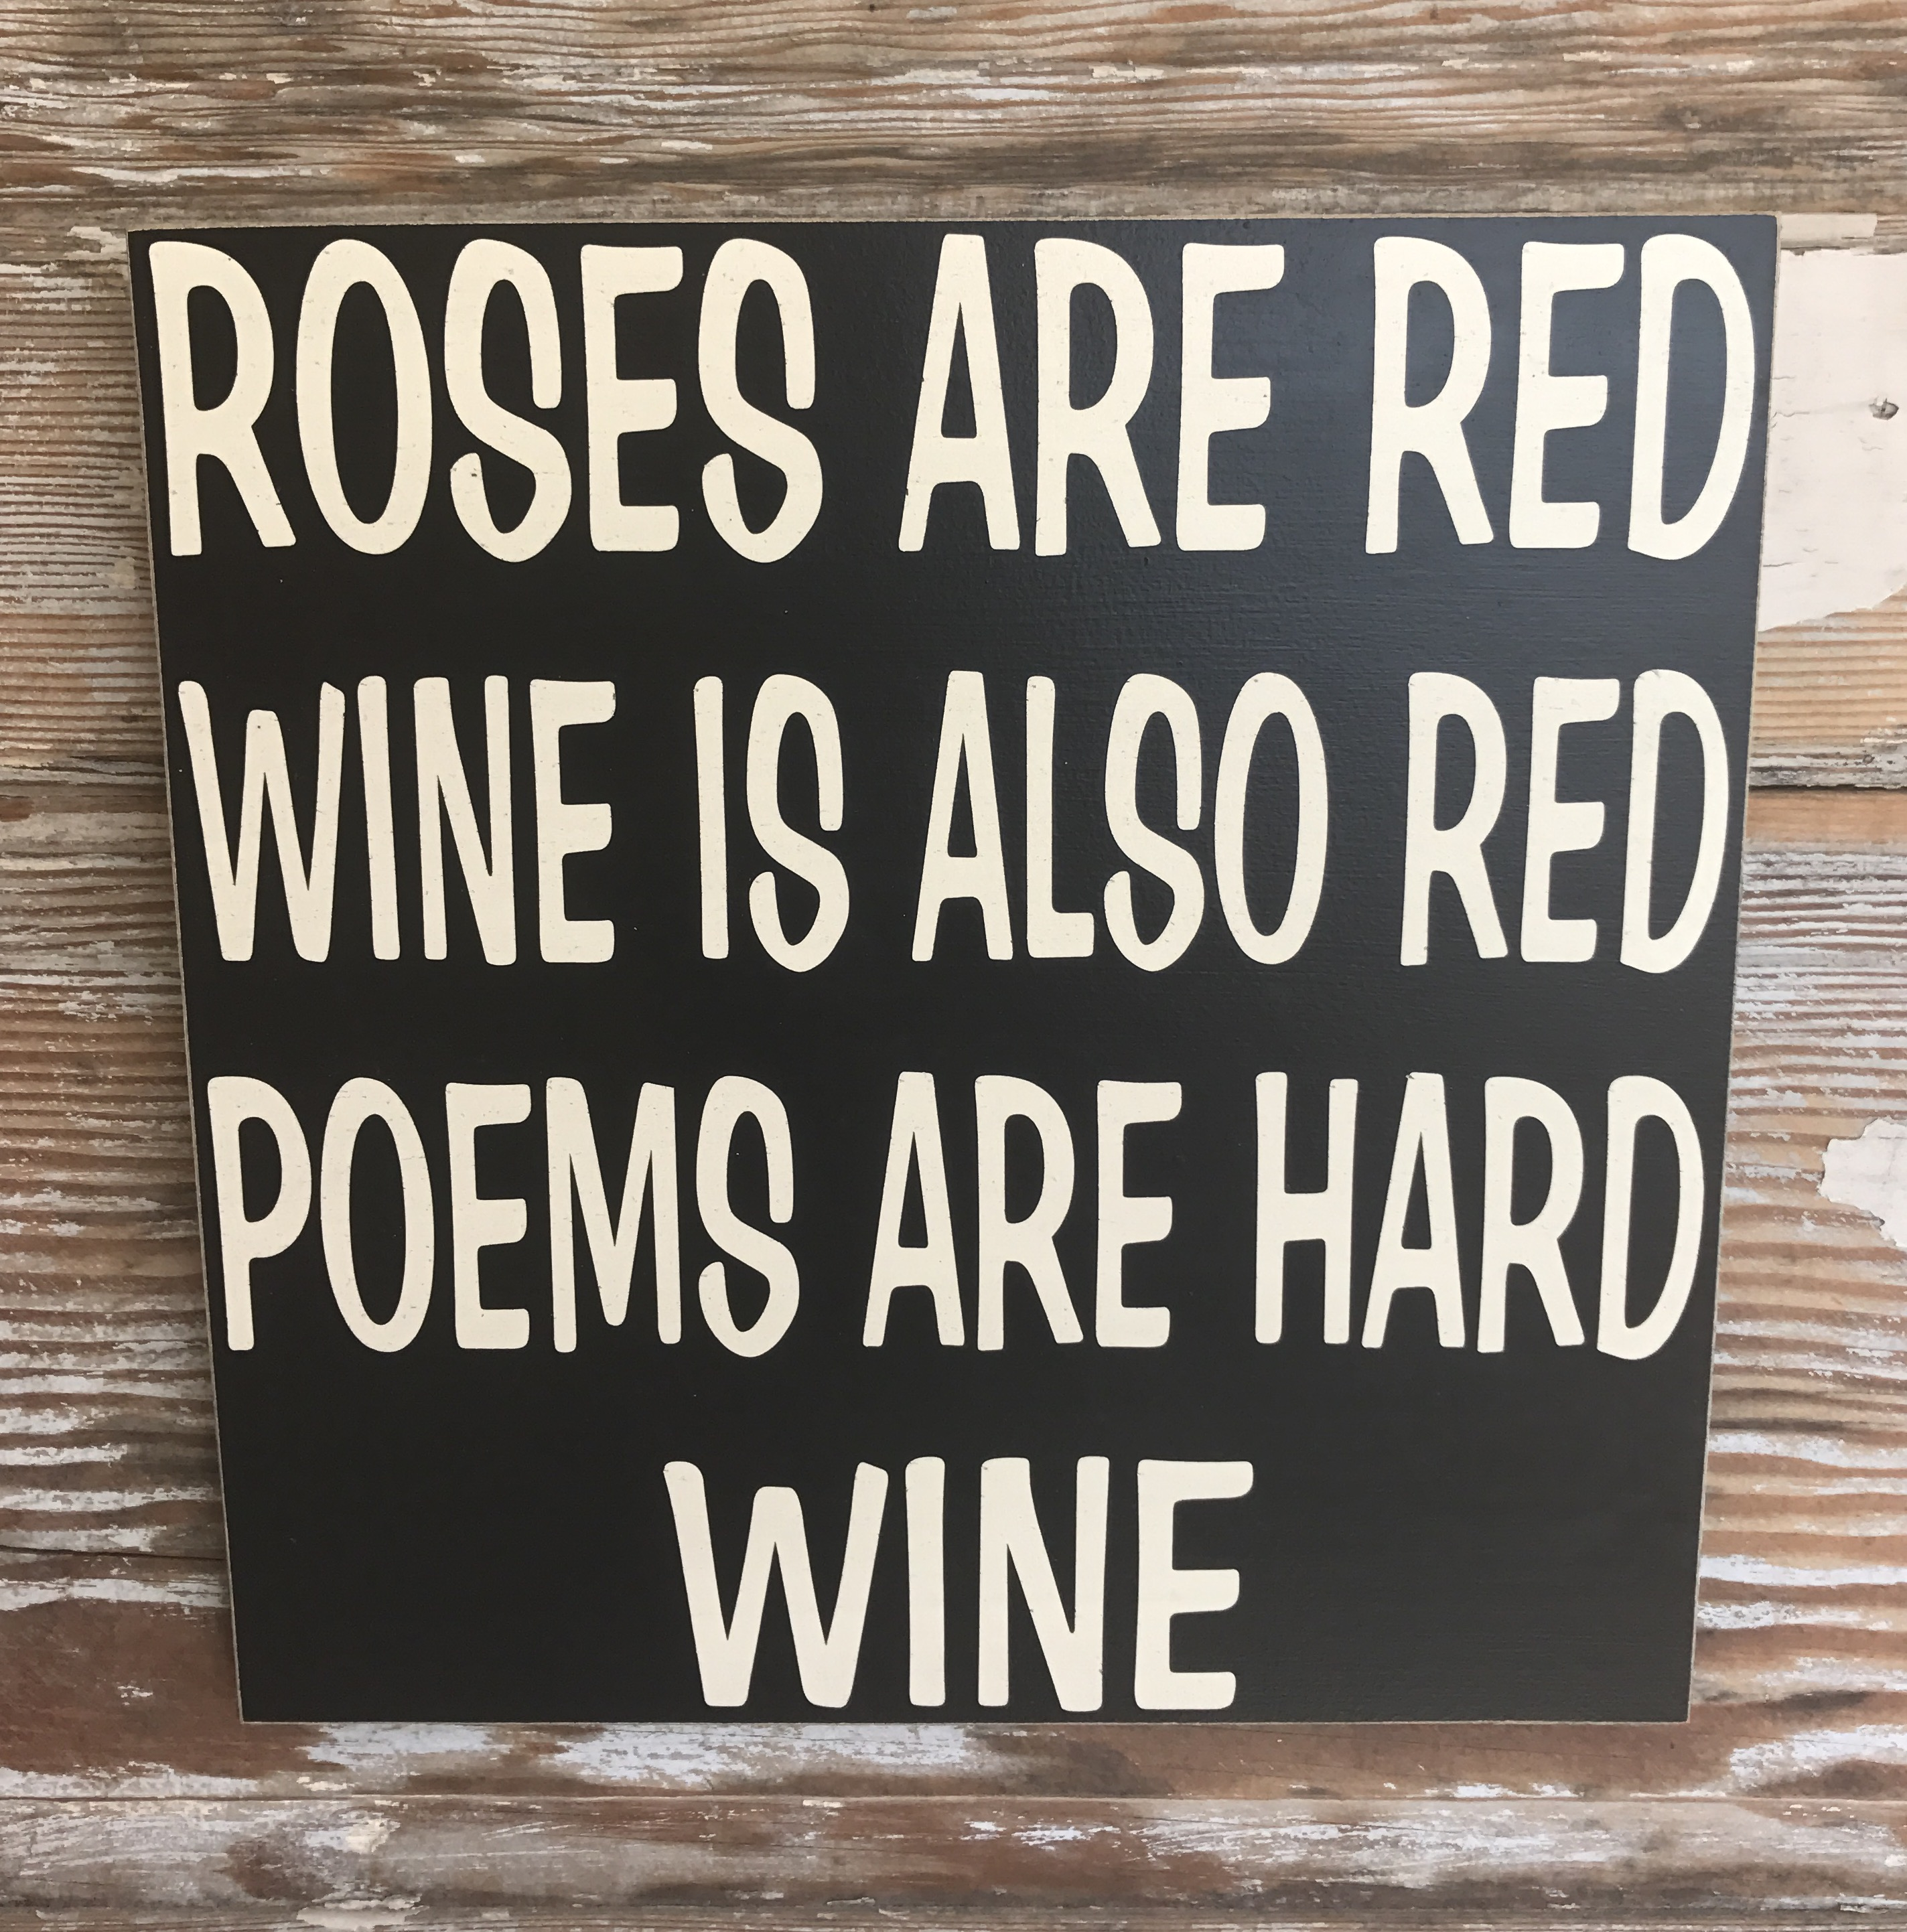 roses are red wine is also red poems are hard wine funny wine